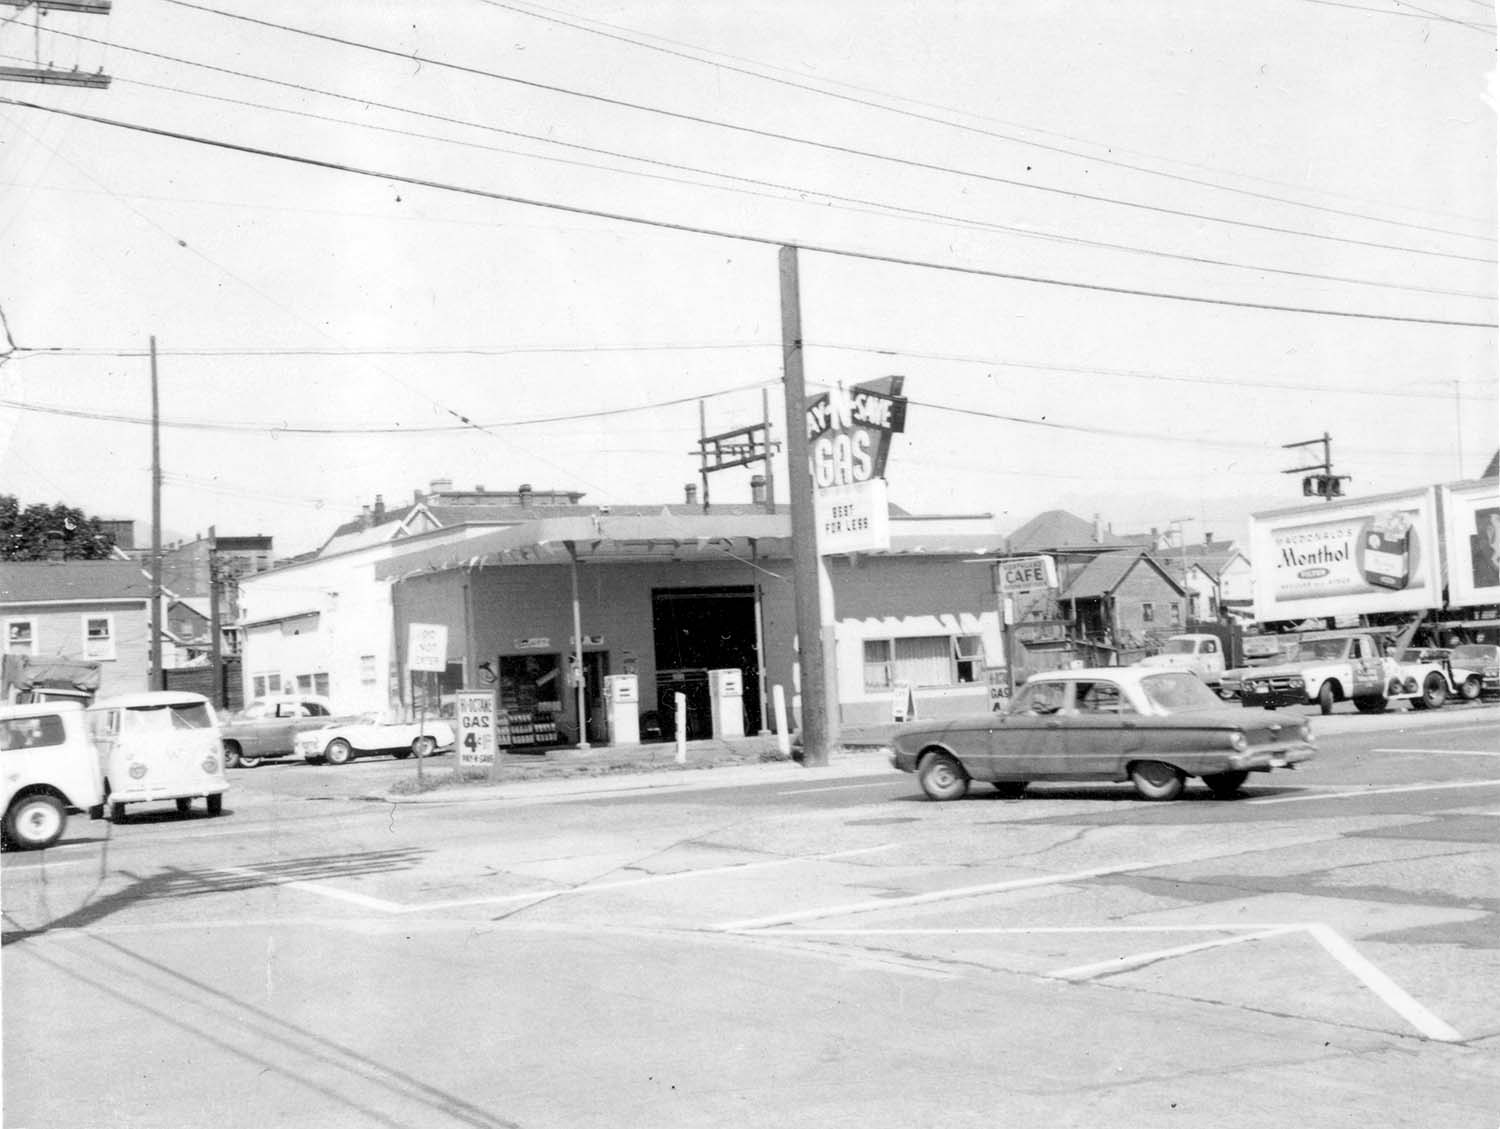 219 and 221 Prior Street, 1969. Photograph shows the Iberica Garage and the Northland Cafe. Reference code COV-S168-: CVA 203-62